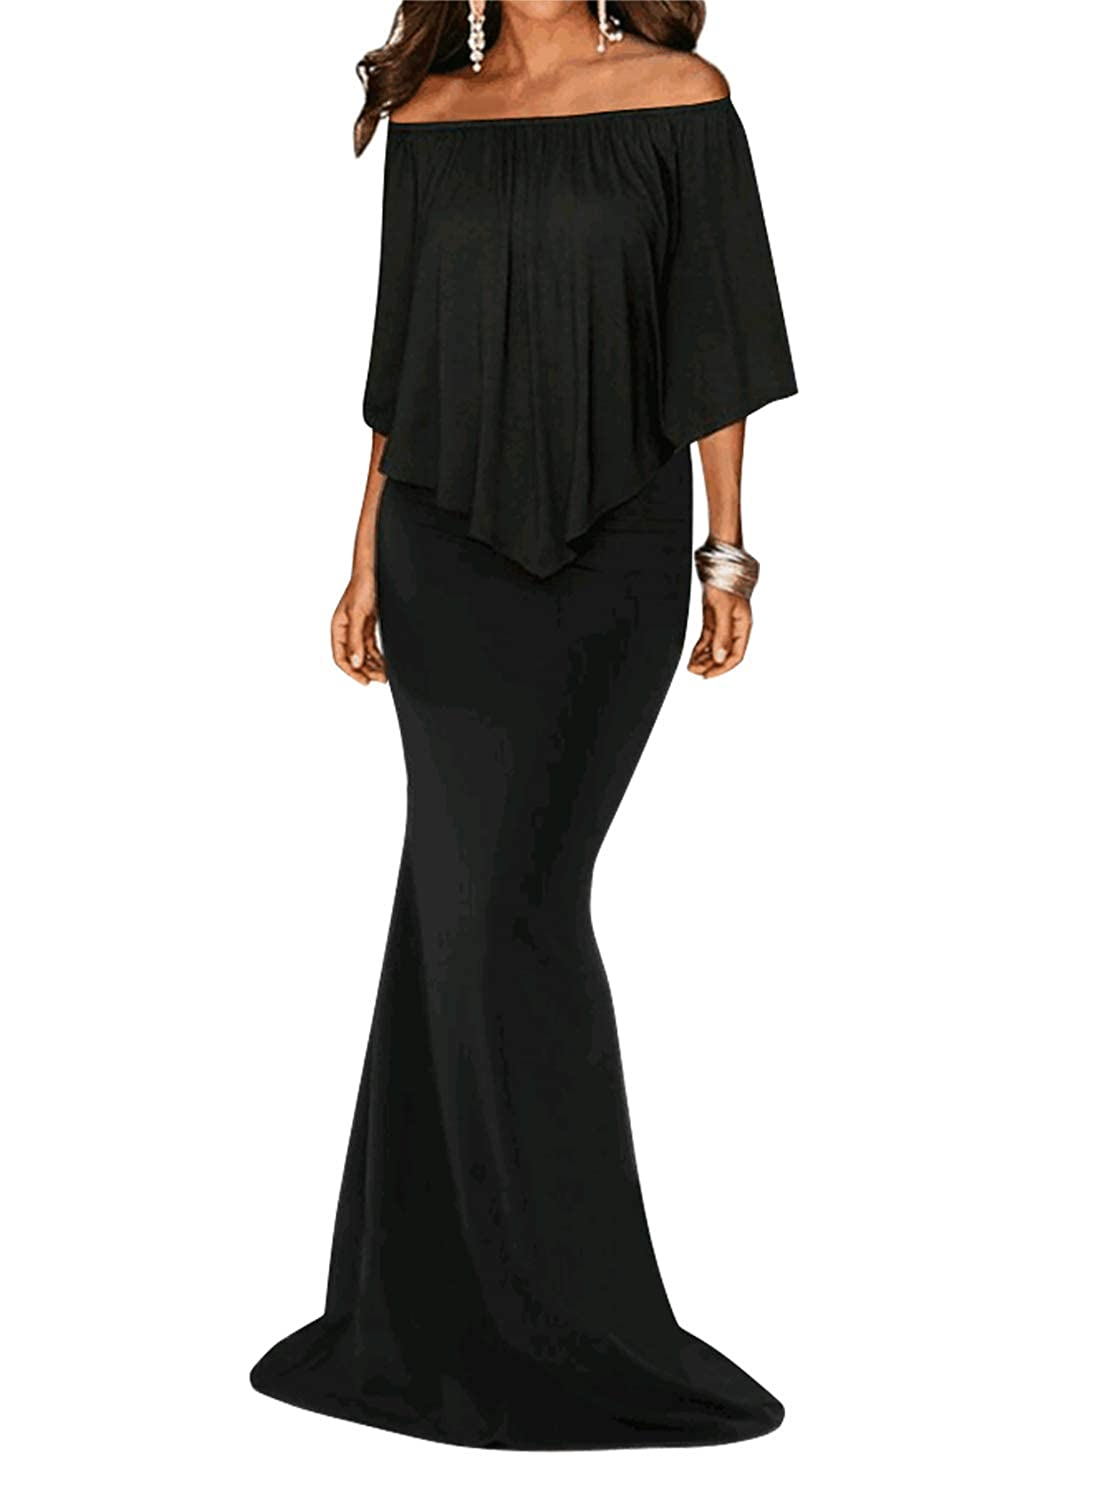 258b237671 This Is A Elegant Beautiful Fashion and Stunning Full Length Gown For Party,  Evening, Cocktail and Other Important Occastions. Off Shoulder Style With  Flowy ...